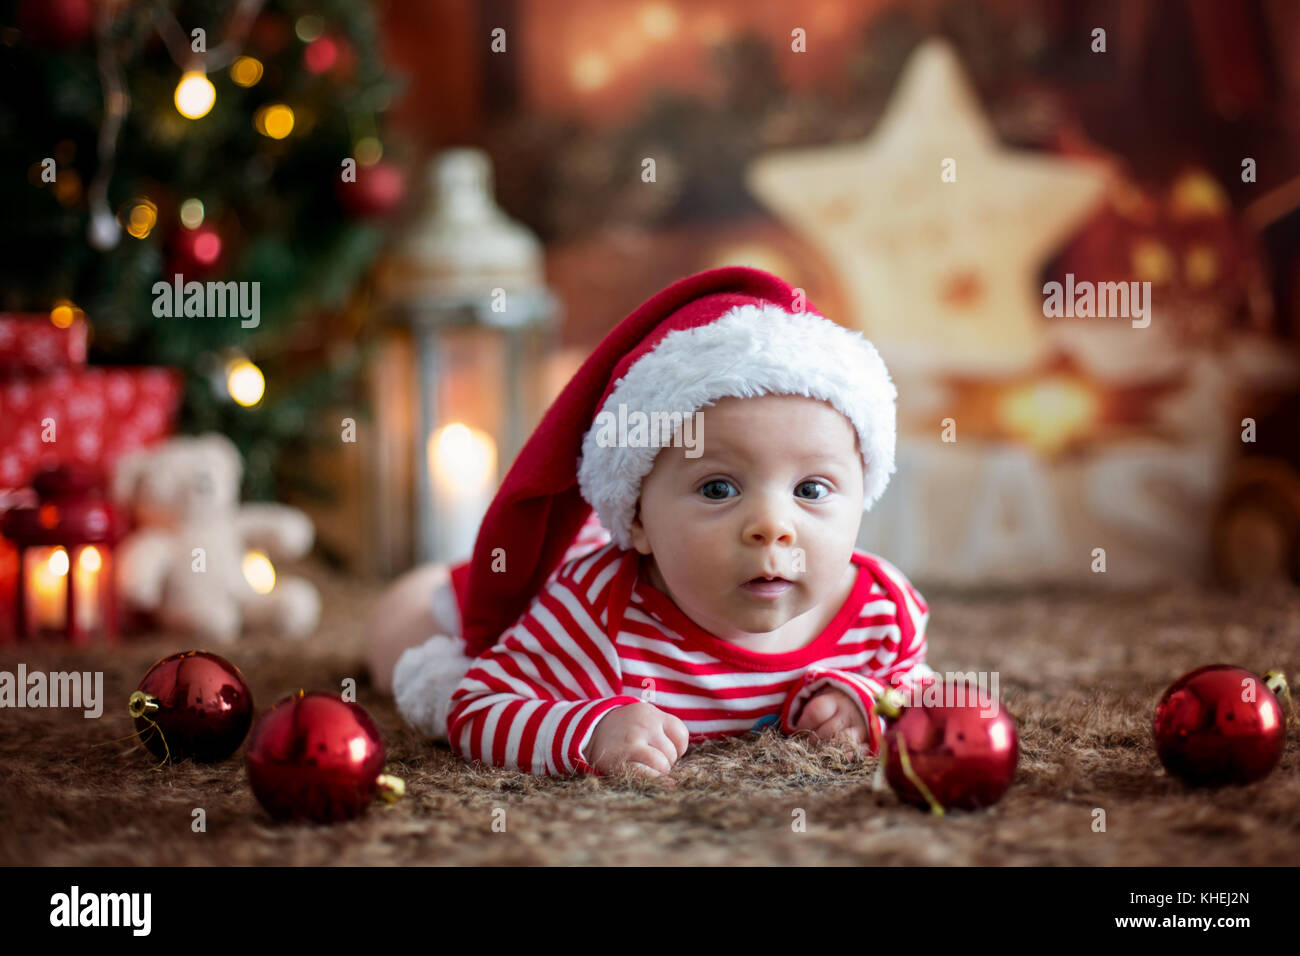 Cute Infant Boy Christmas Outfits